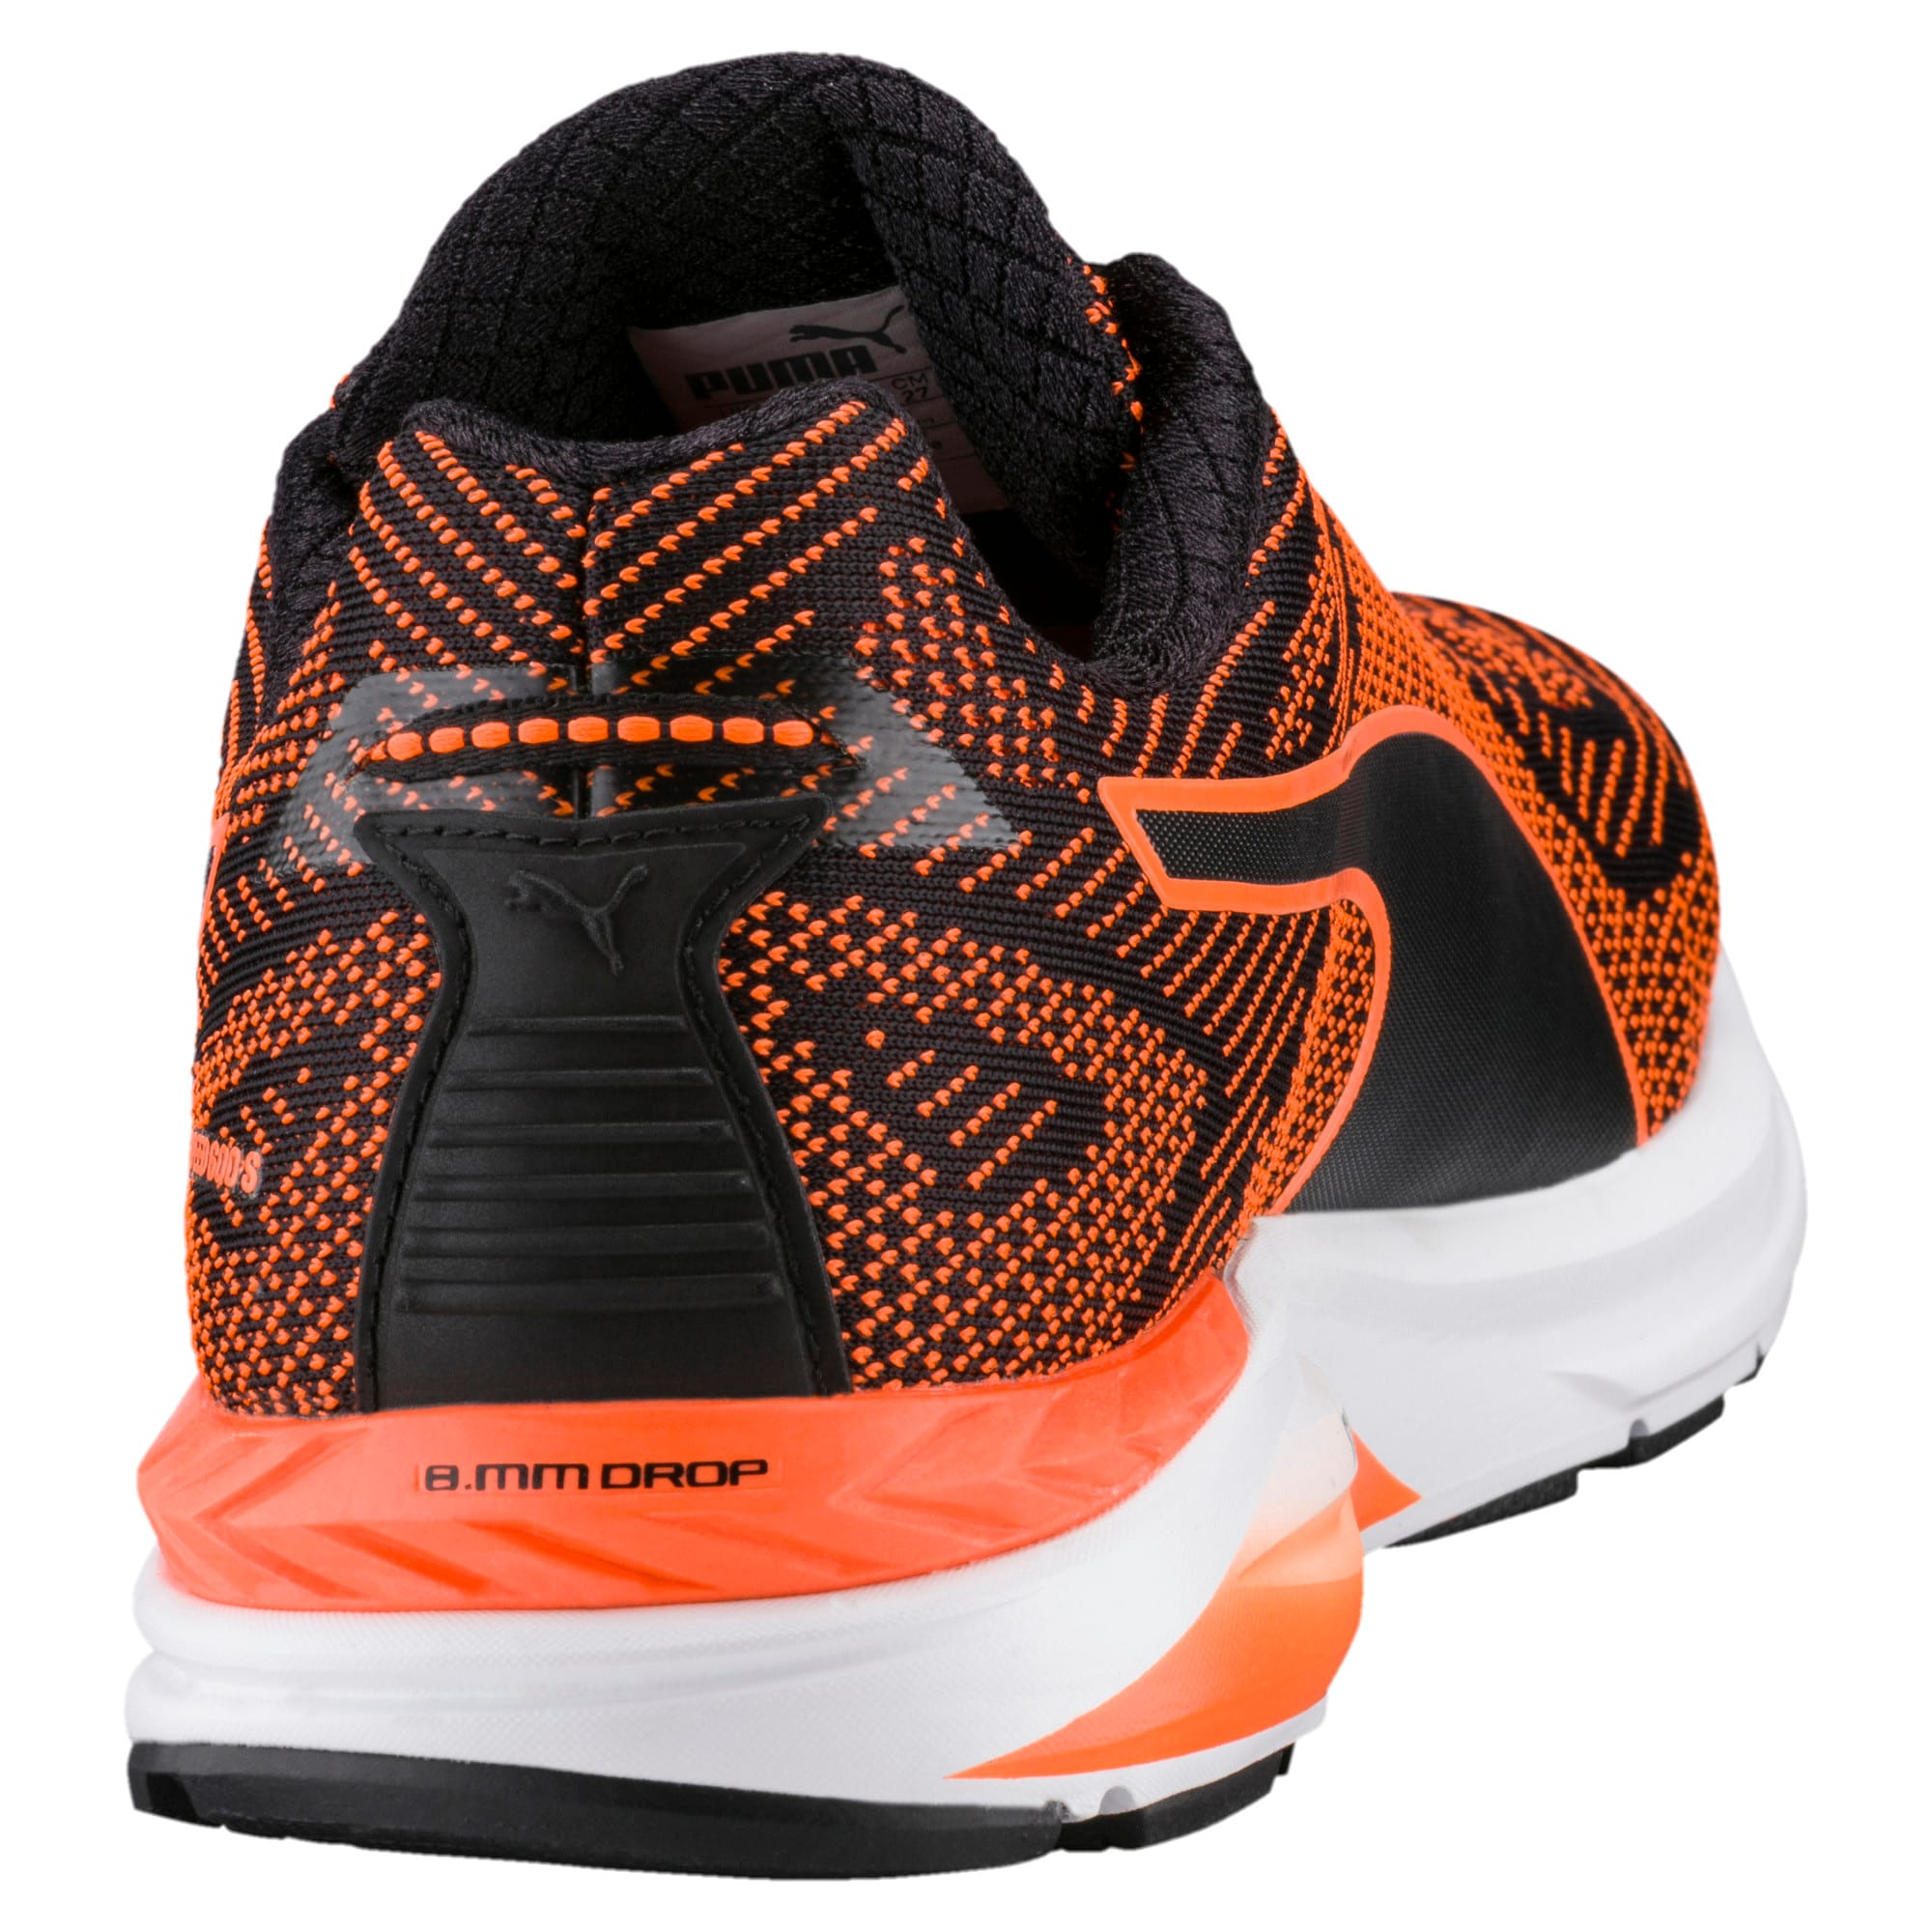 Thumbnail 3 of Speed 600 S IGNITE Men's Running Shoes, Puma Black-Shocking Orange, medium-IND